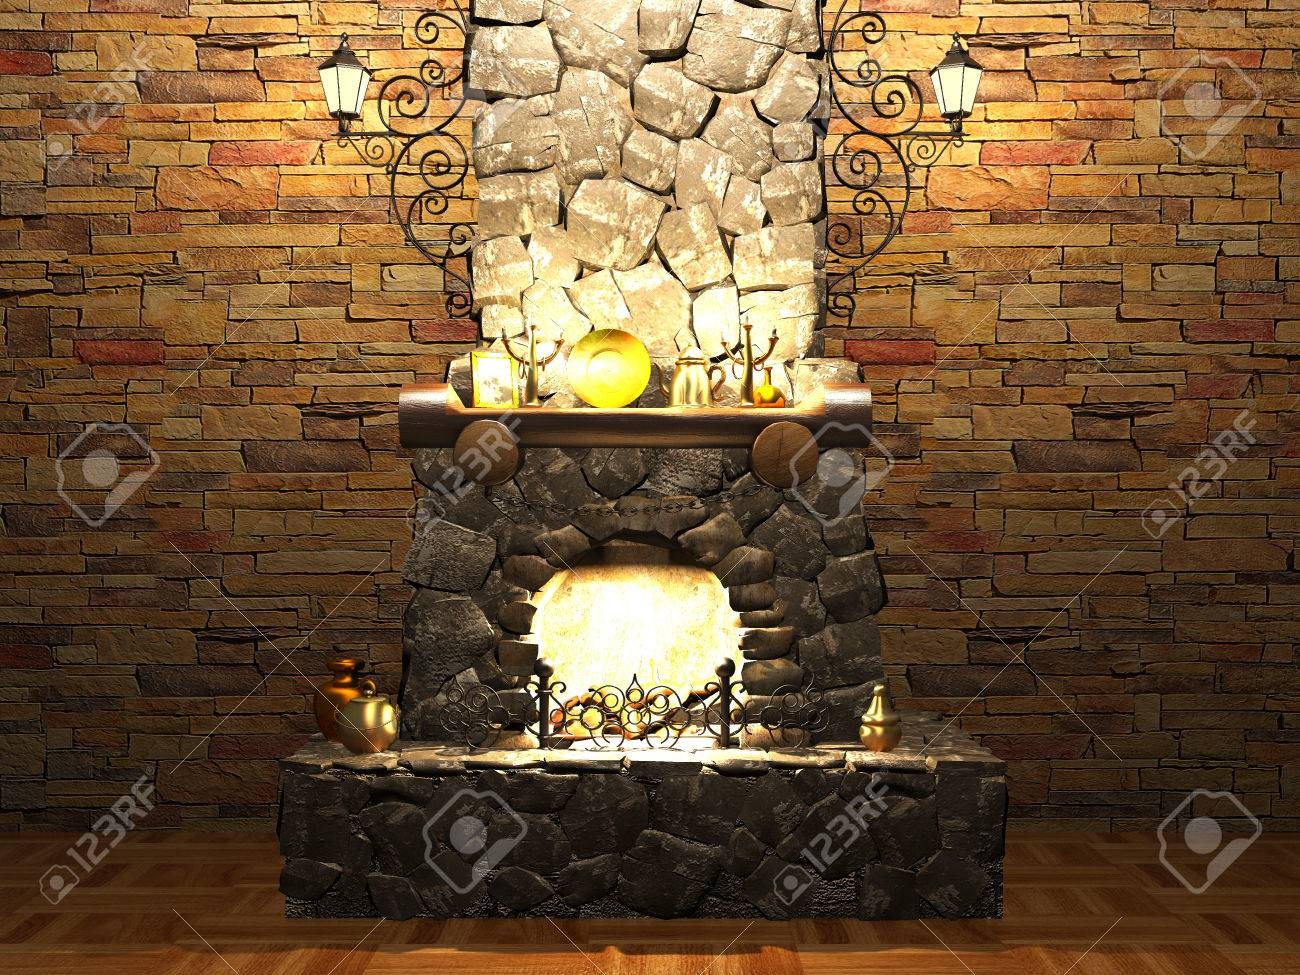 makeover trends about faux panels ideas of fireplace incredible popular and uncategorized stone pict veneer